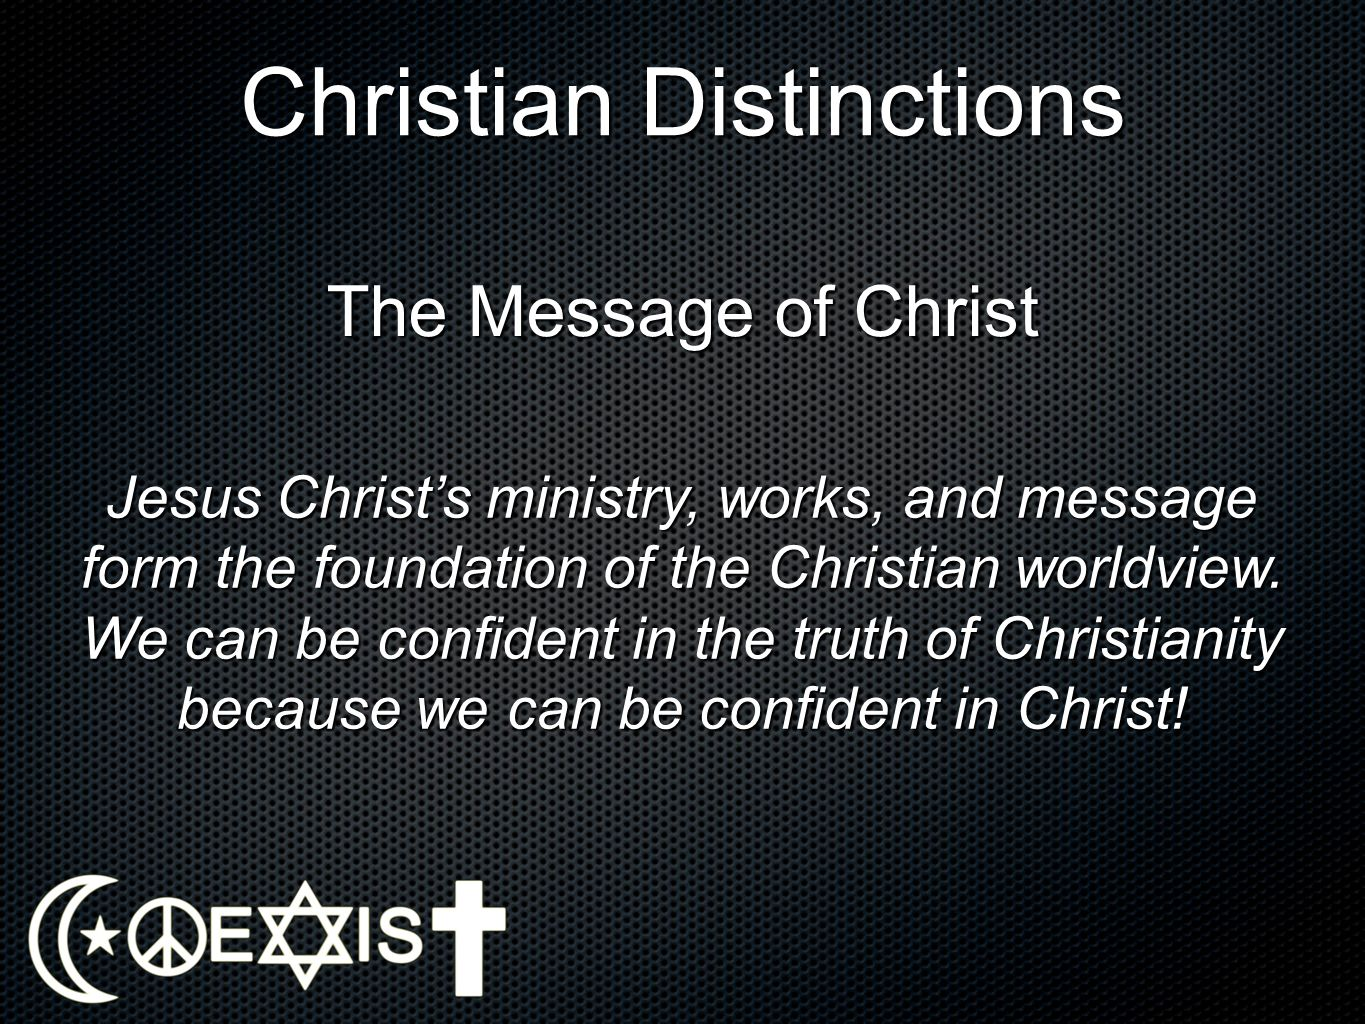 Christian Distinctions